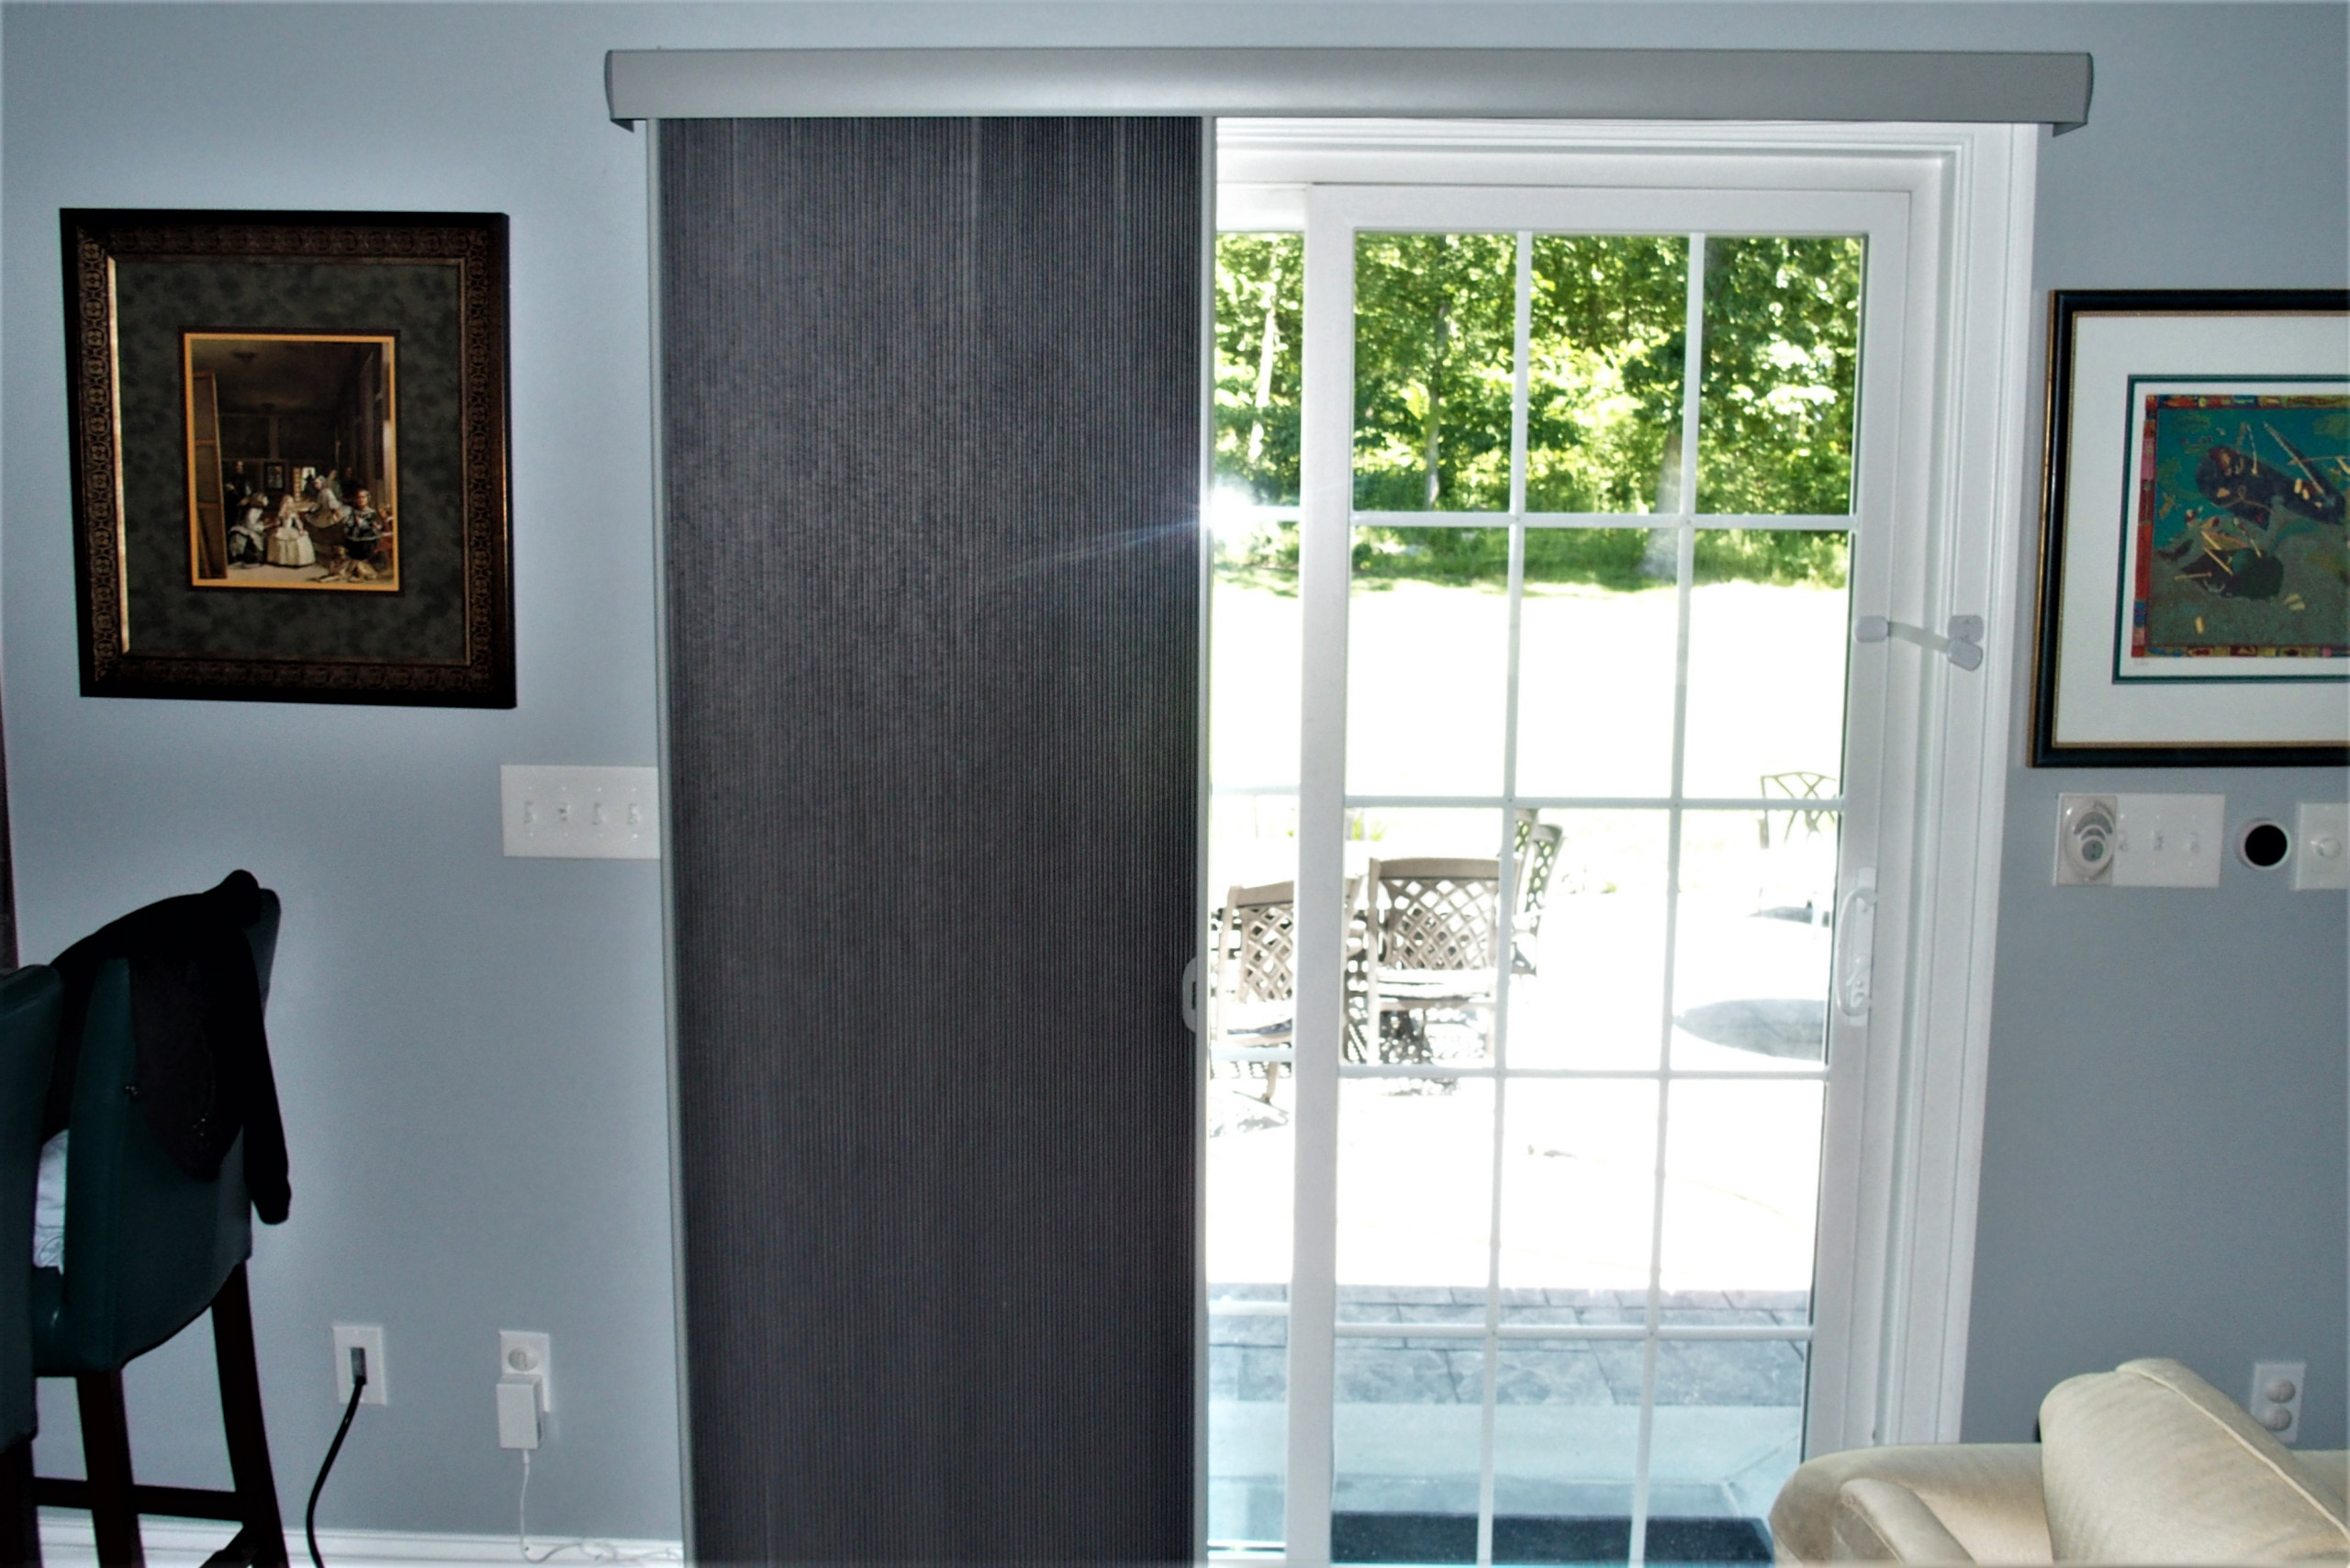 Motorized Hunter Douglas Duettes throughout a whole house